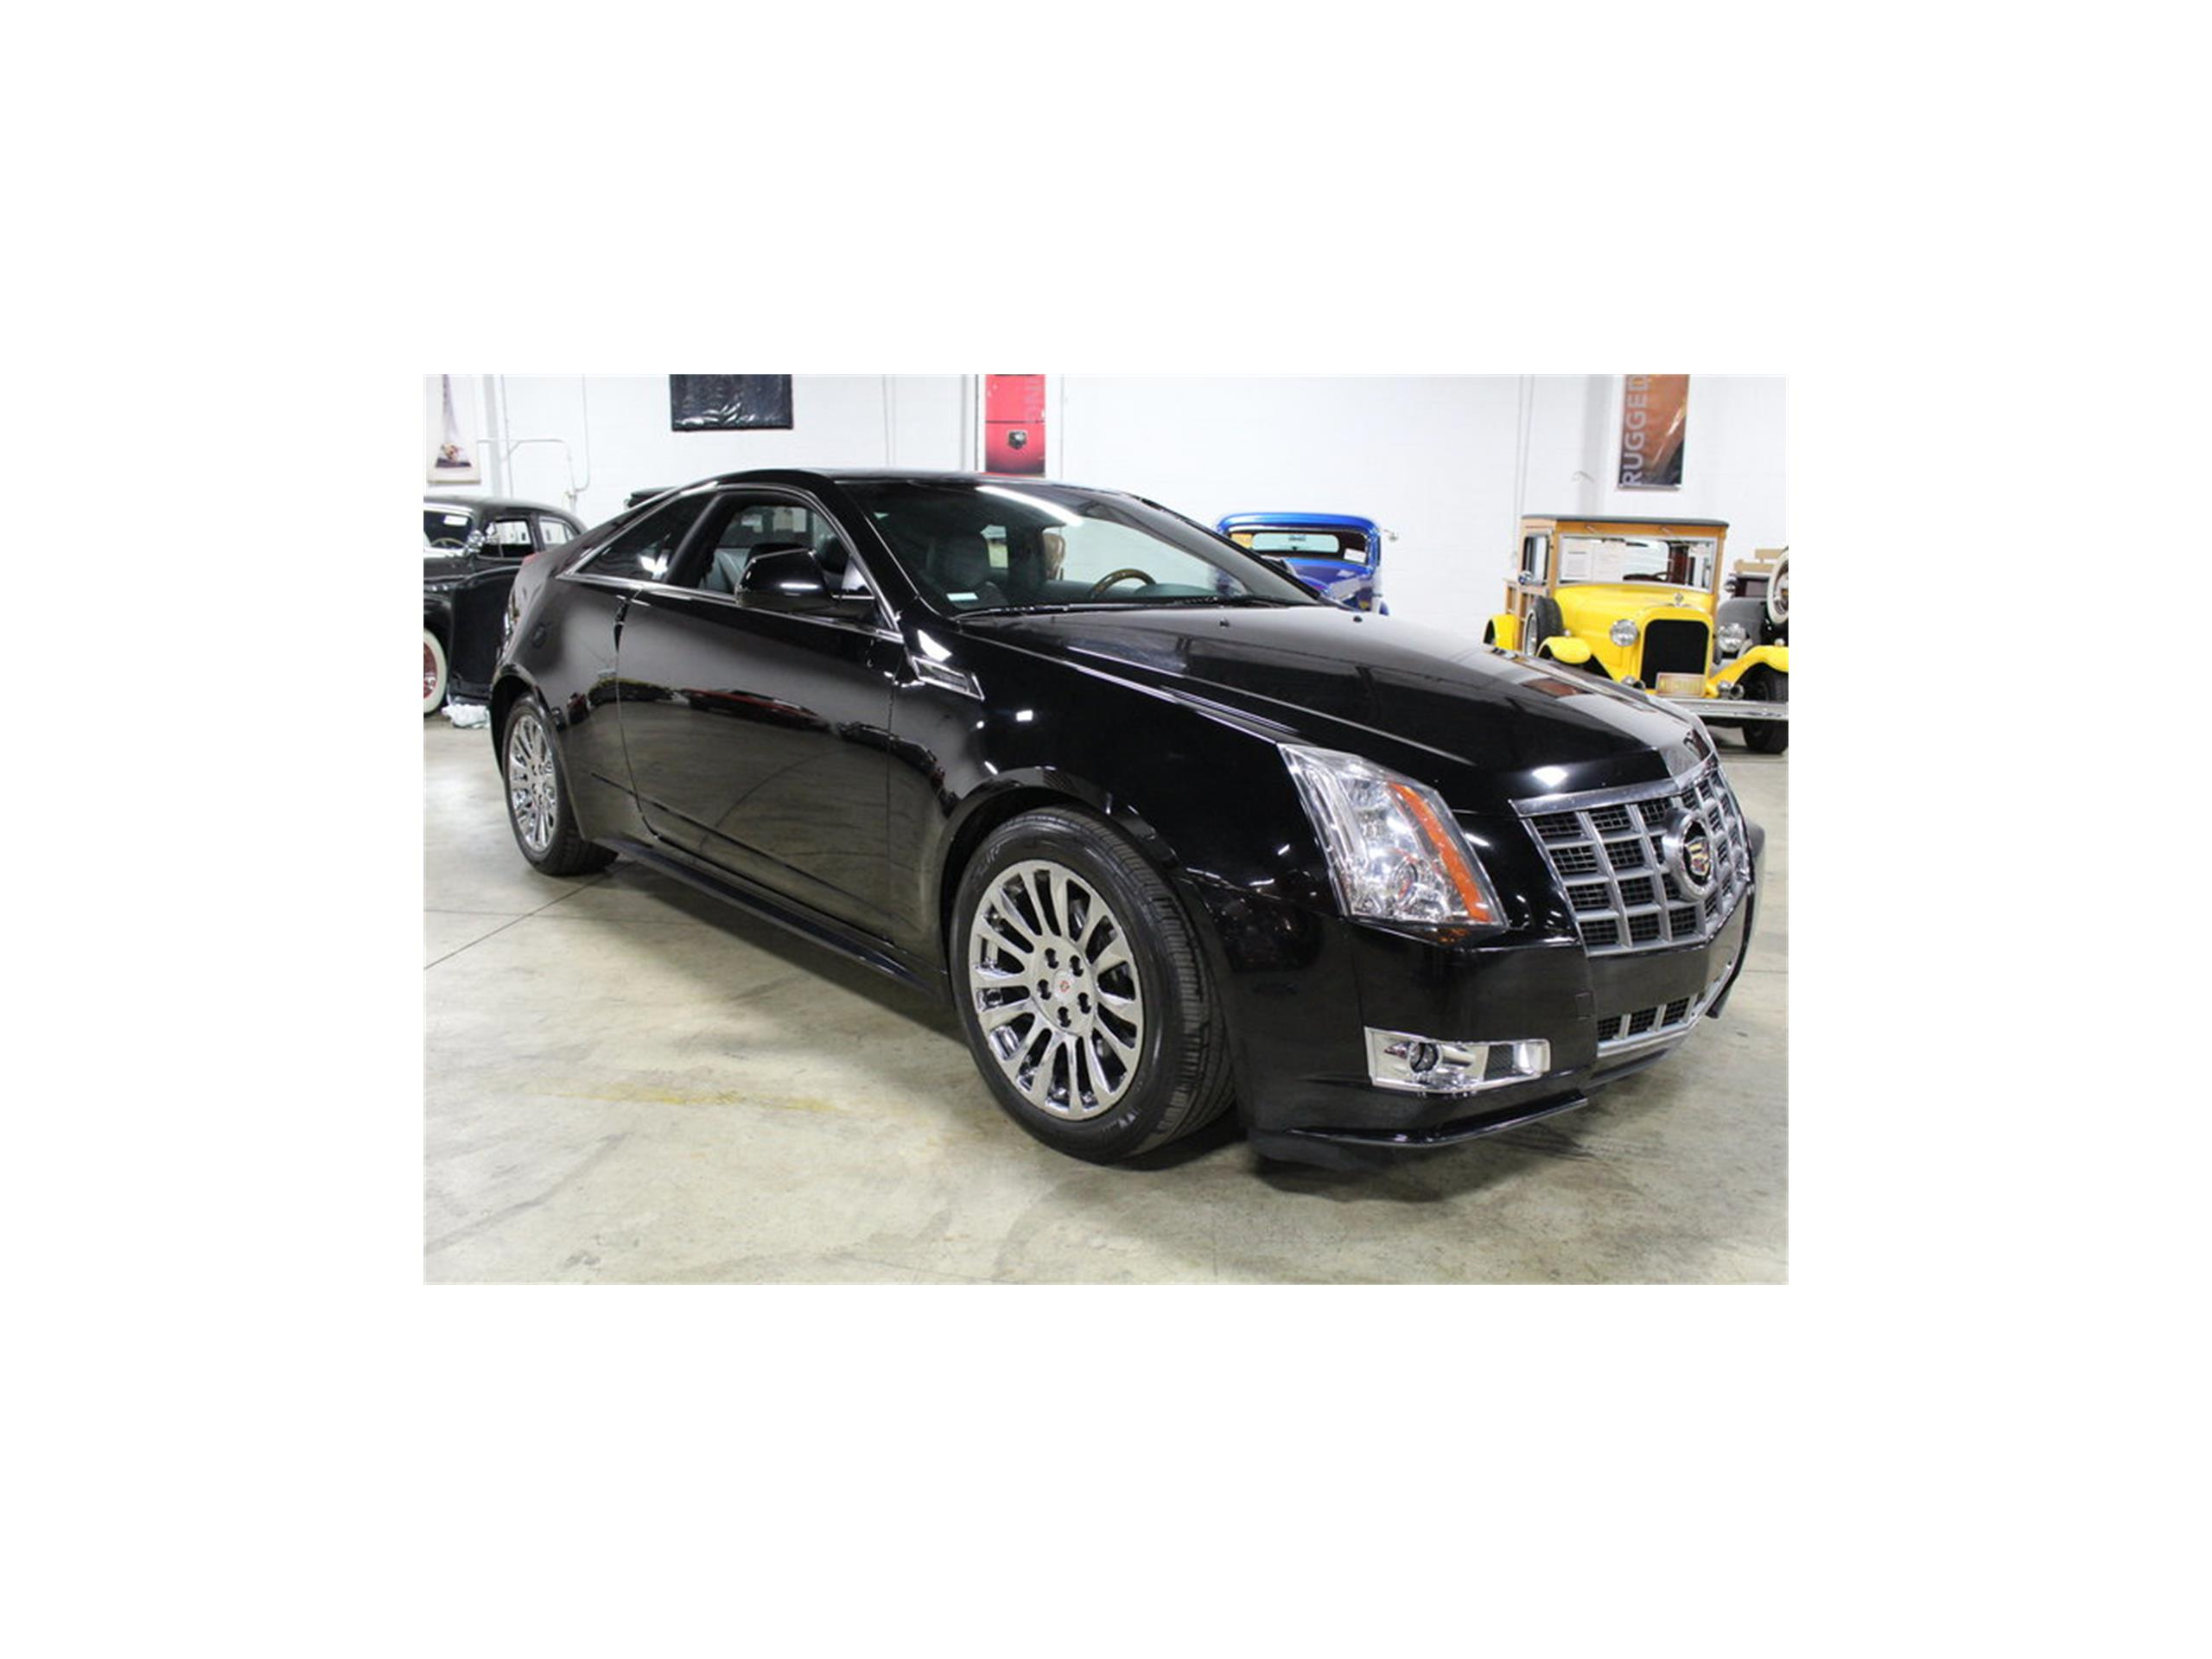 2006 Cadillac Cts Exhaust Diagram Trusted Wiring 2003 Sts Engine 2012 How To Teach U2022 Aftermarket Upgrades